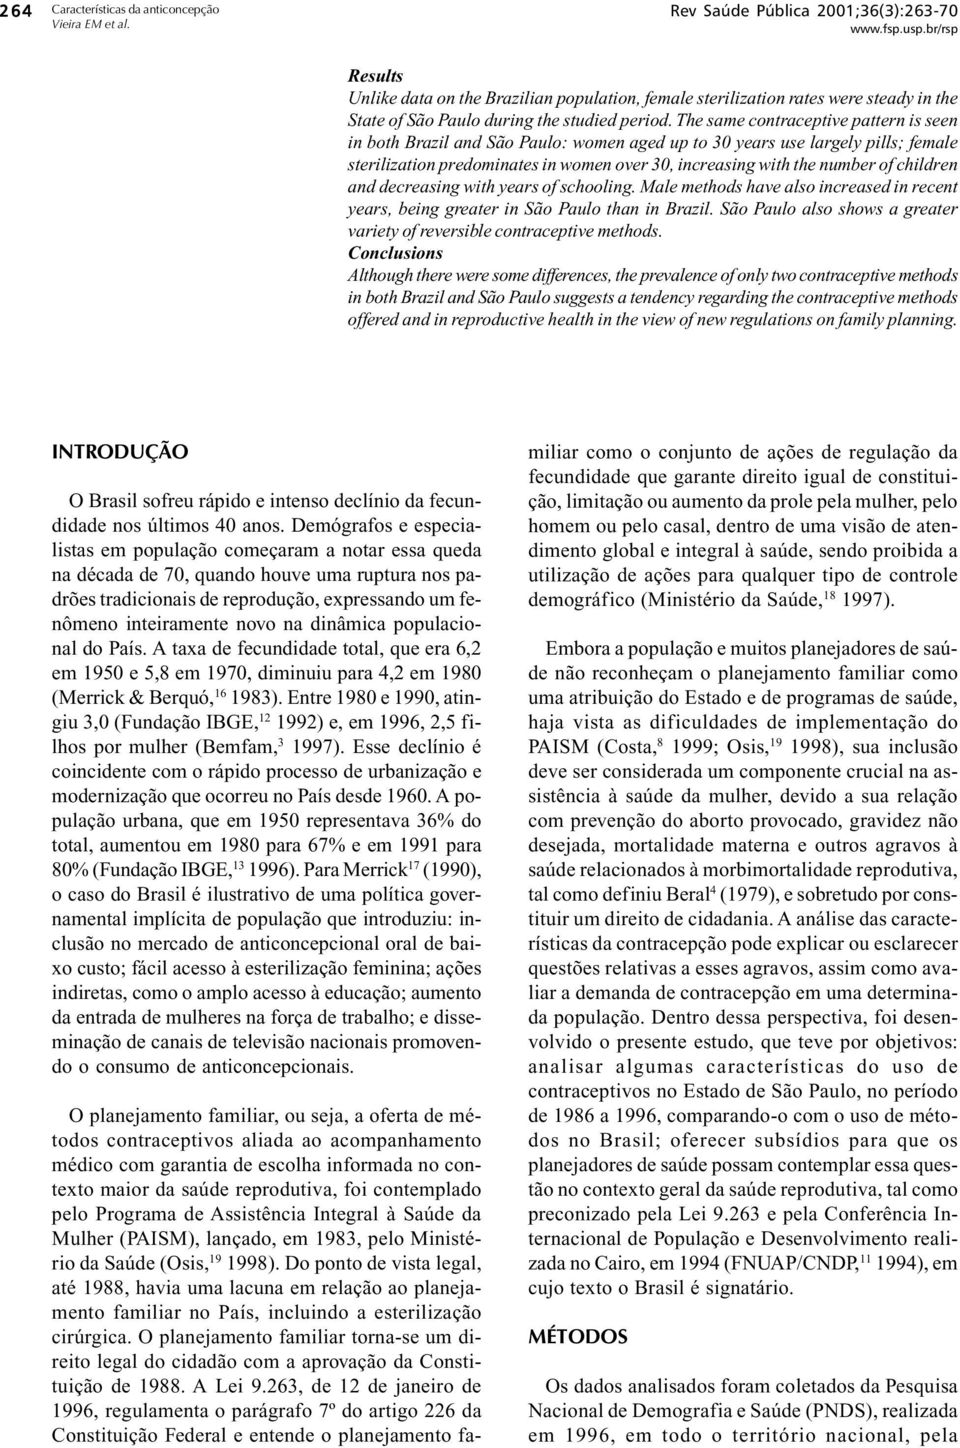 The same contraceptive pattern is seen in both Brazil and São Paulo: women aged up to 30 years use largely pills; female sterilization predominates in women over 30, increasing with the number of